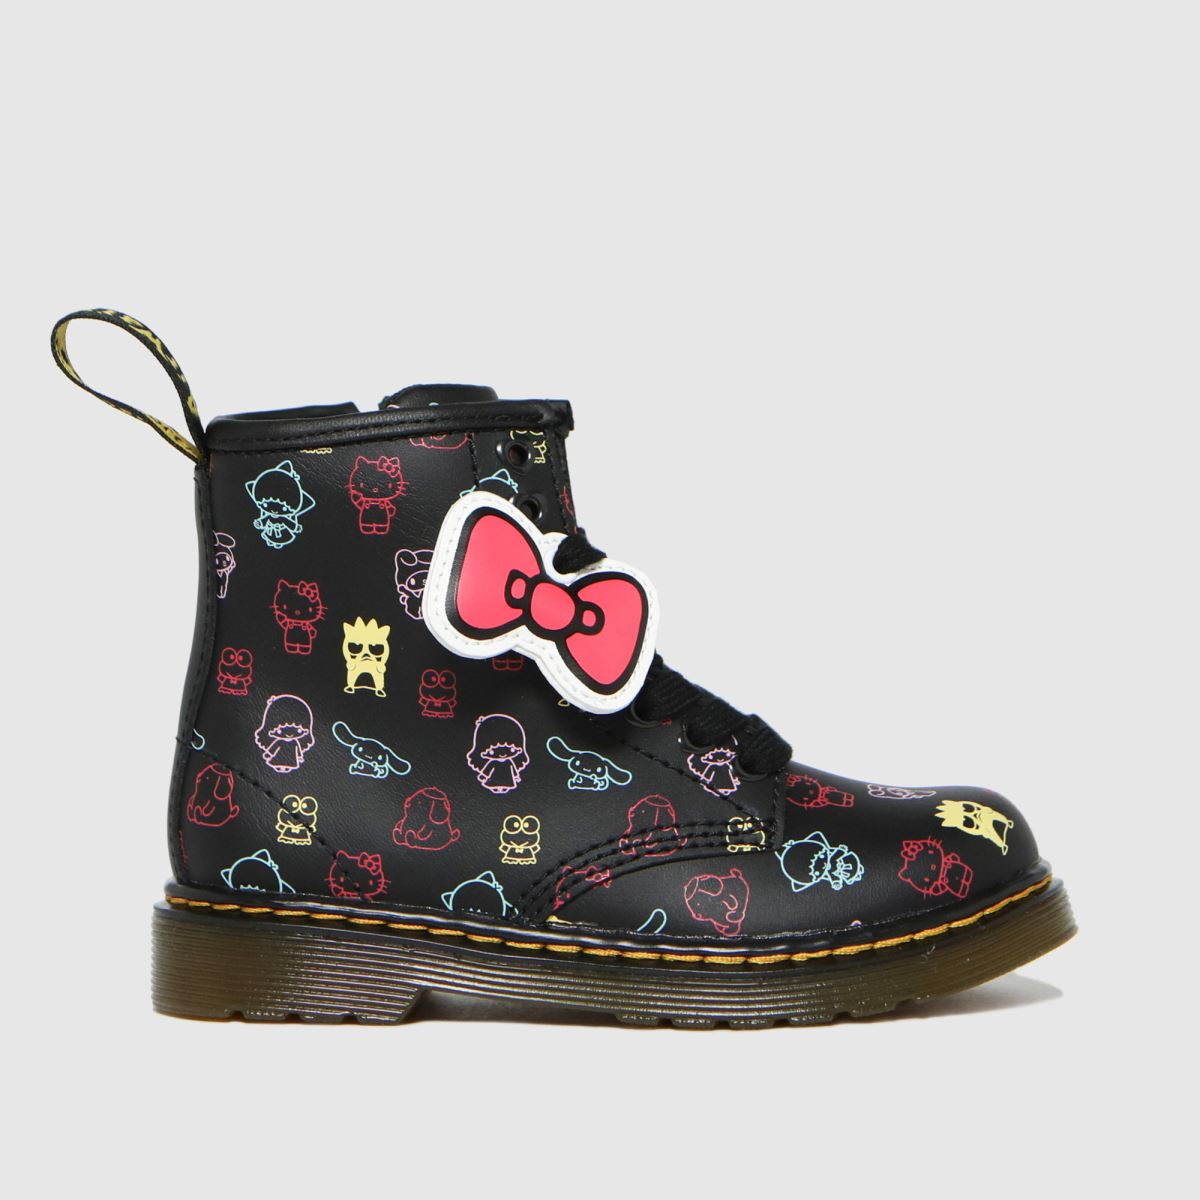 Dr Martens Black & Pink 1460 Hello Kitty Boots Toddler